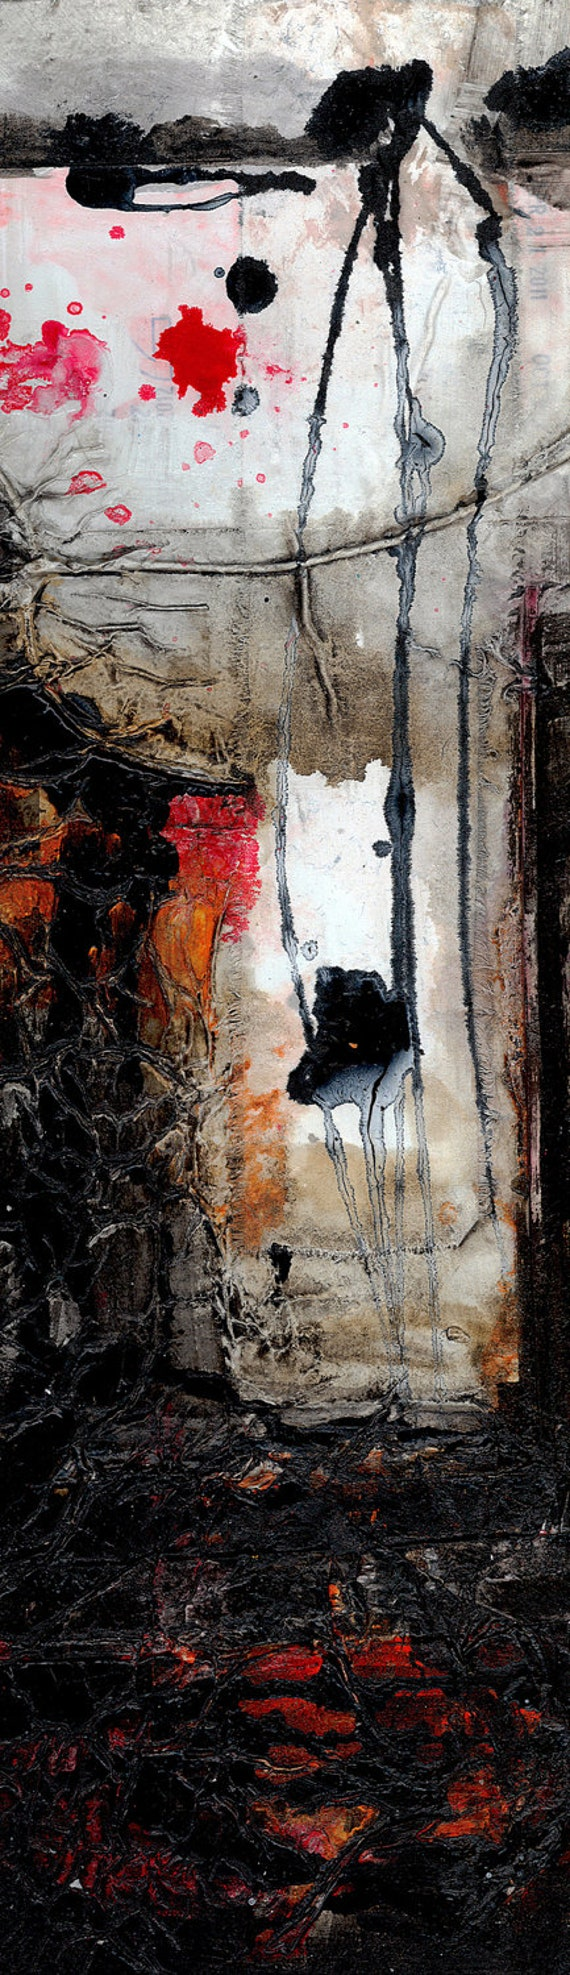 Encounters 4 ... Original Contemporary Modern mixed media art